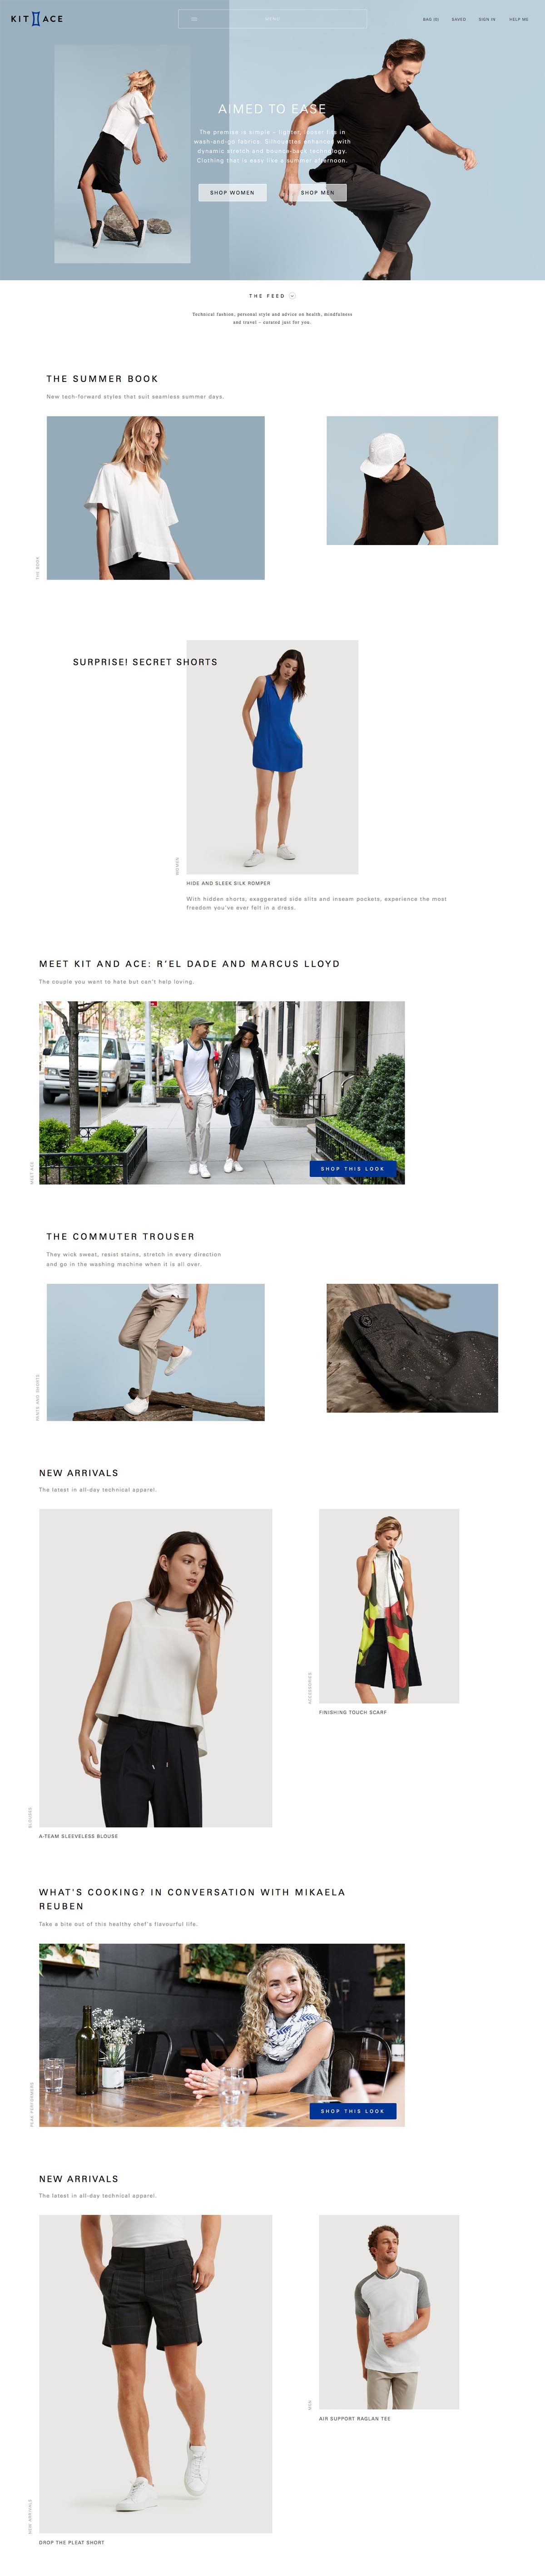 eCommerce website: Kit and Ace